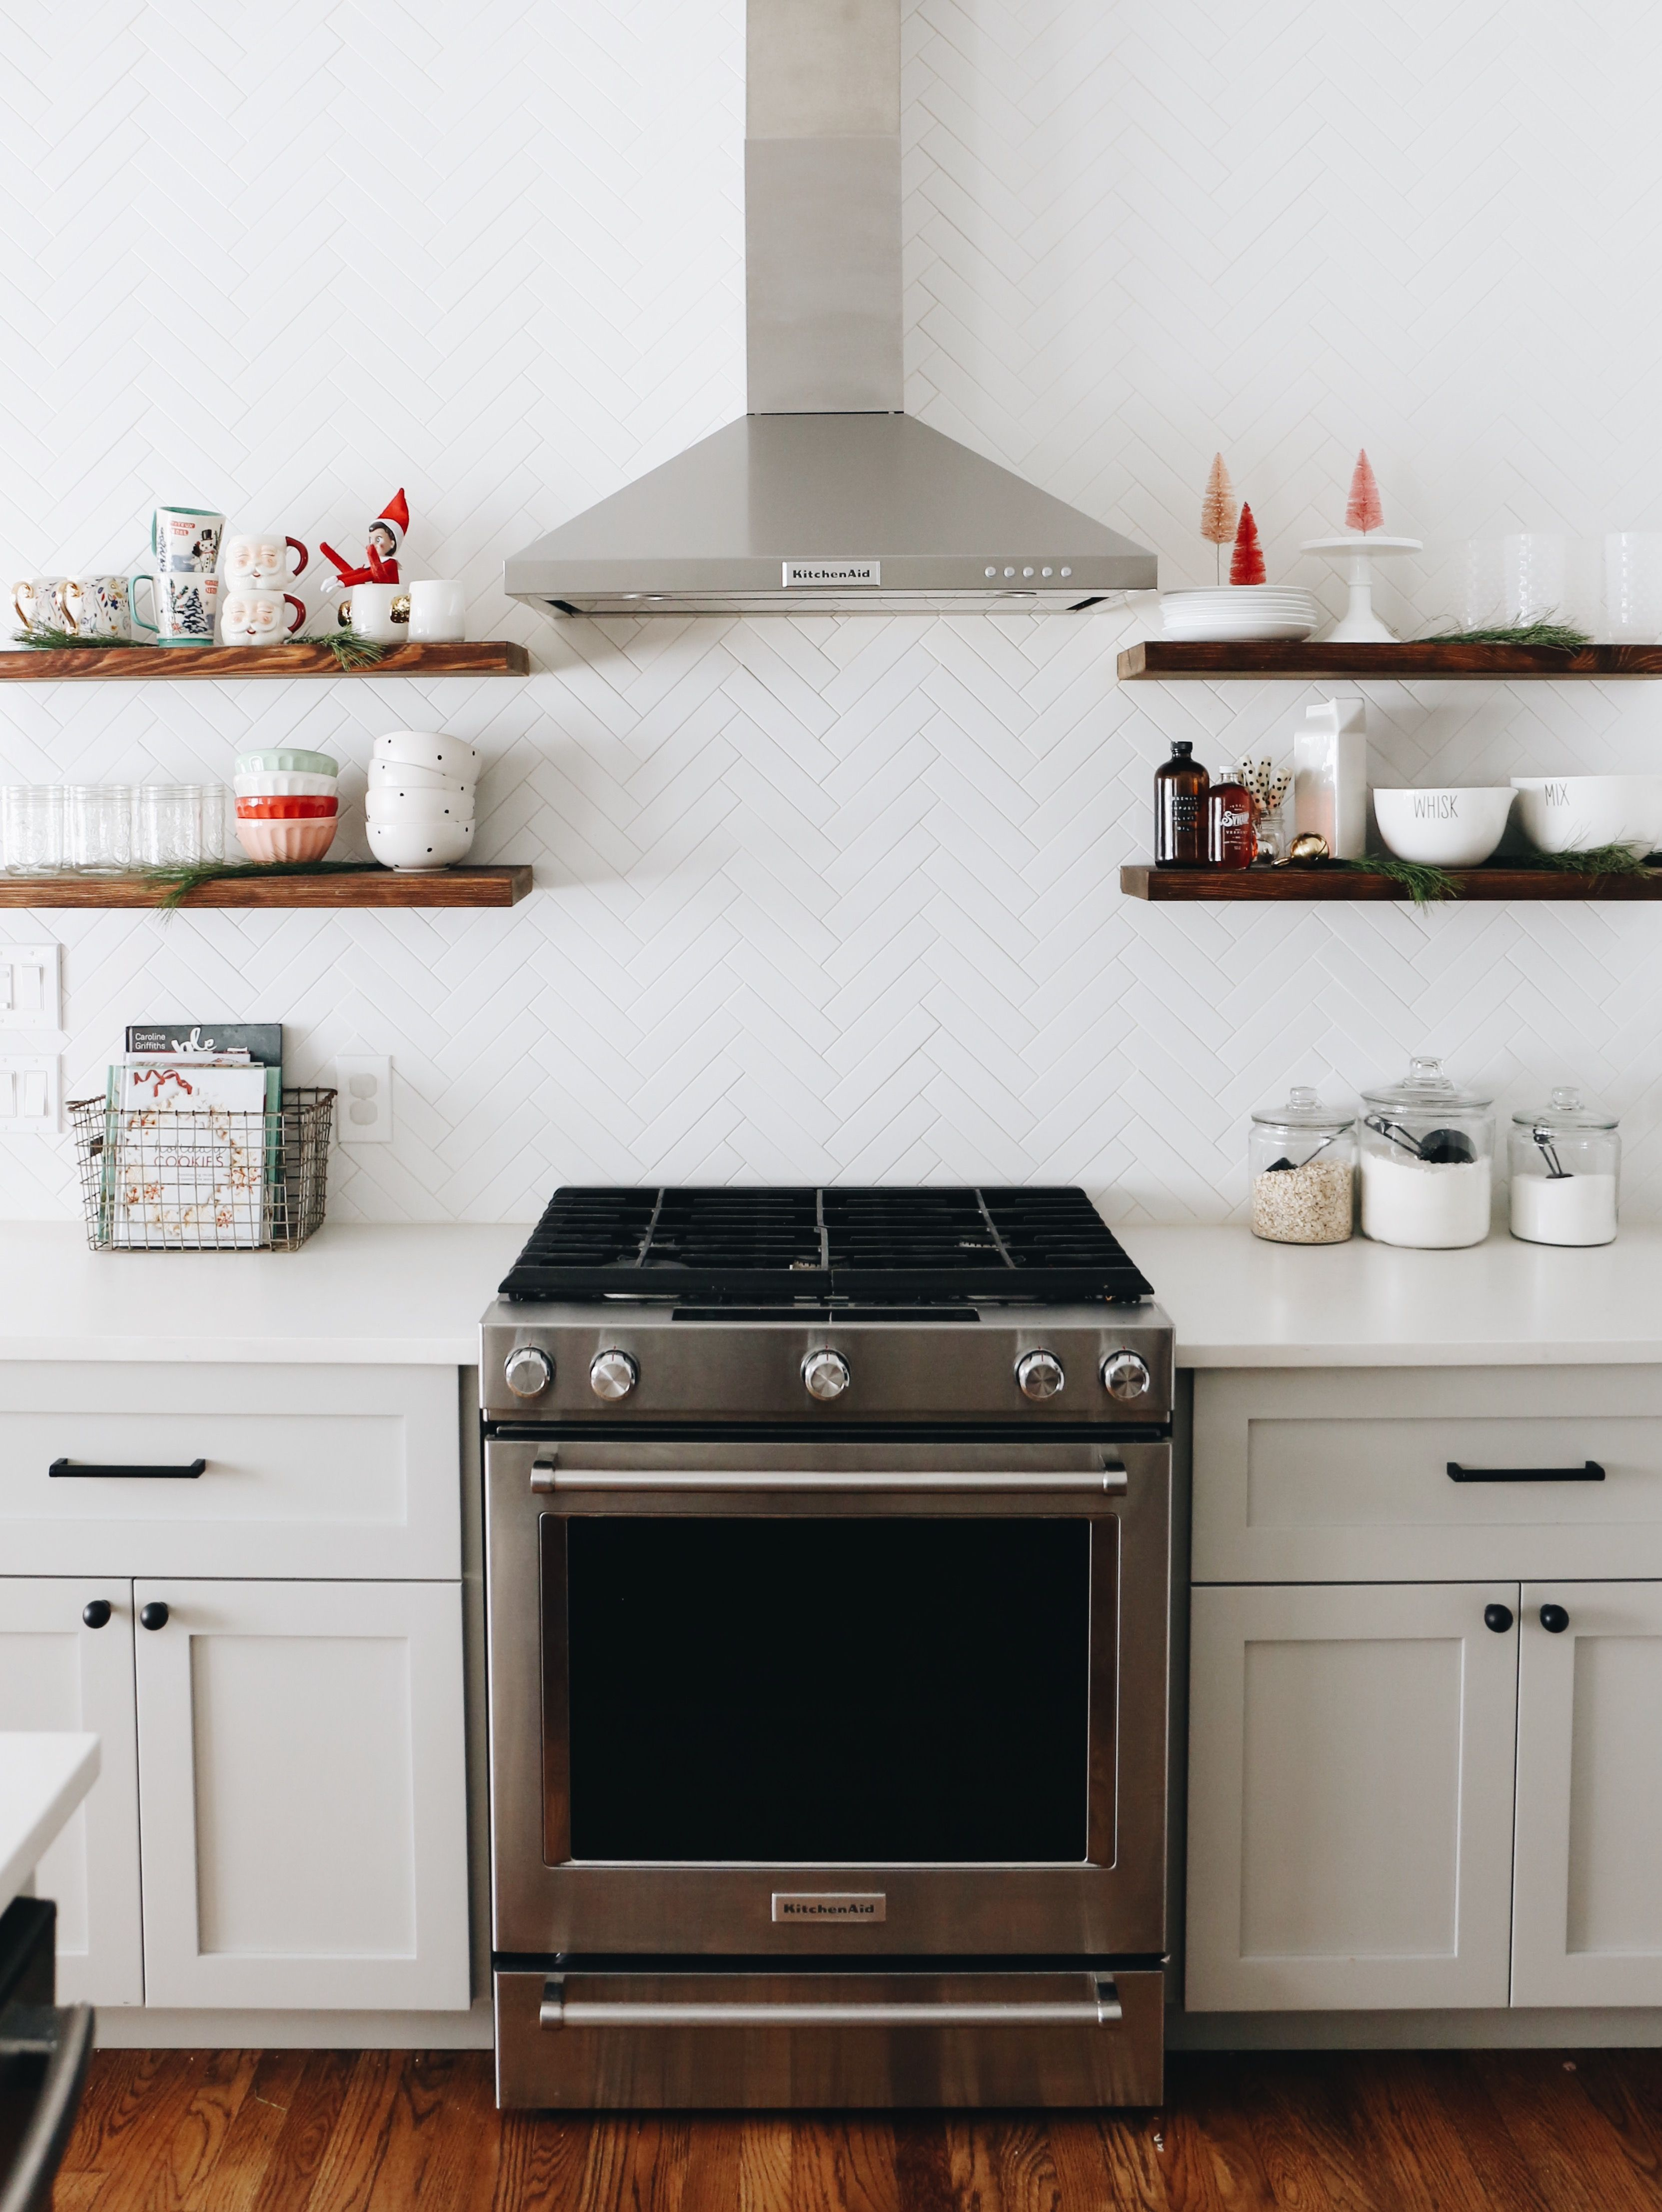 Holiday Home Tour | Kitchens, Holidays and House